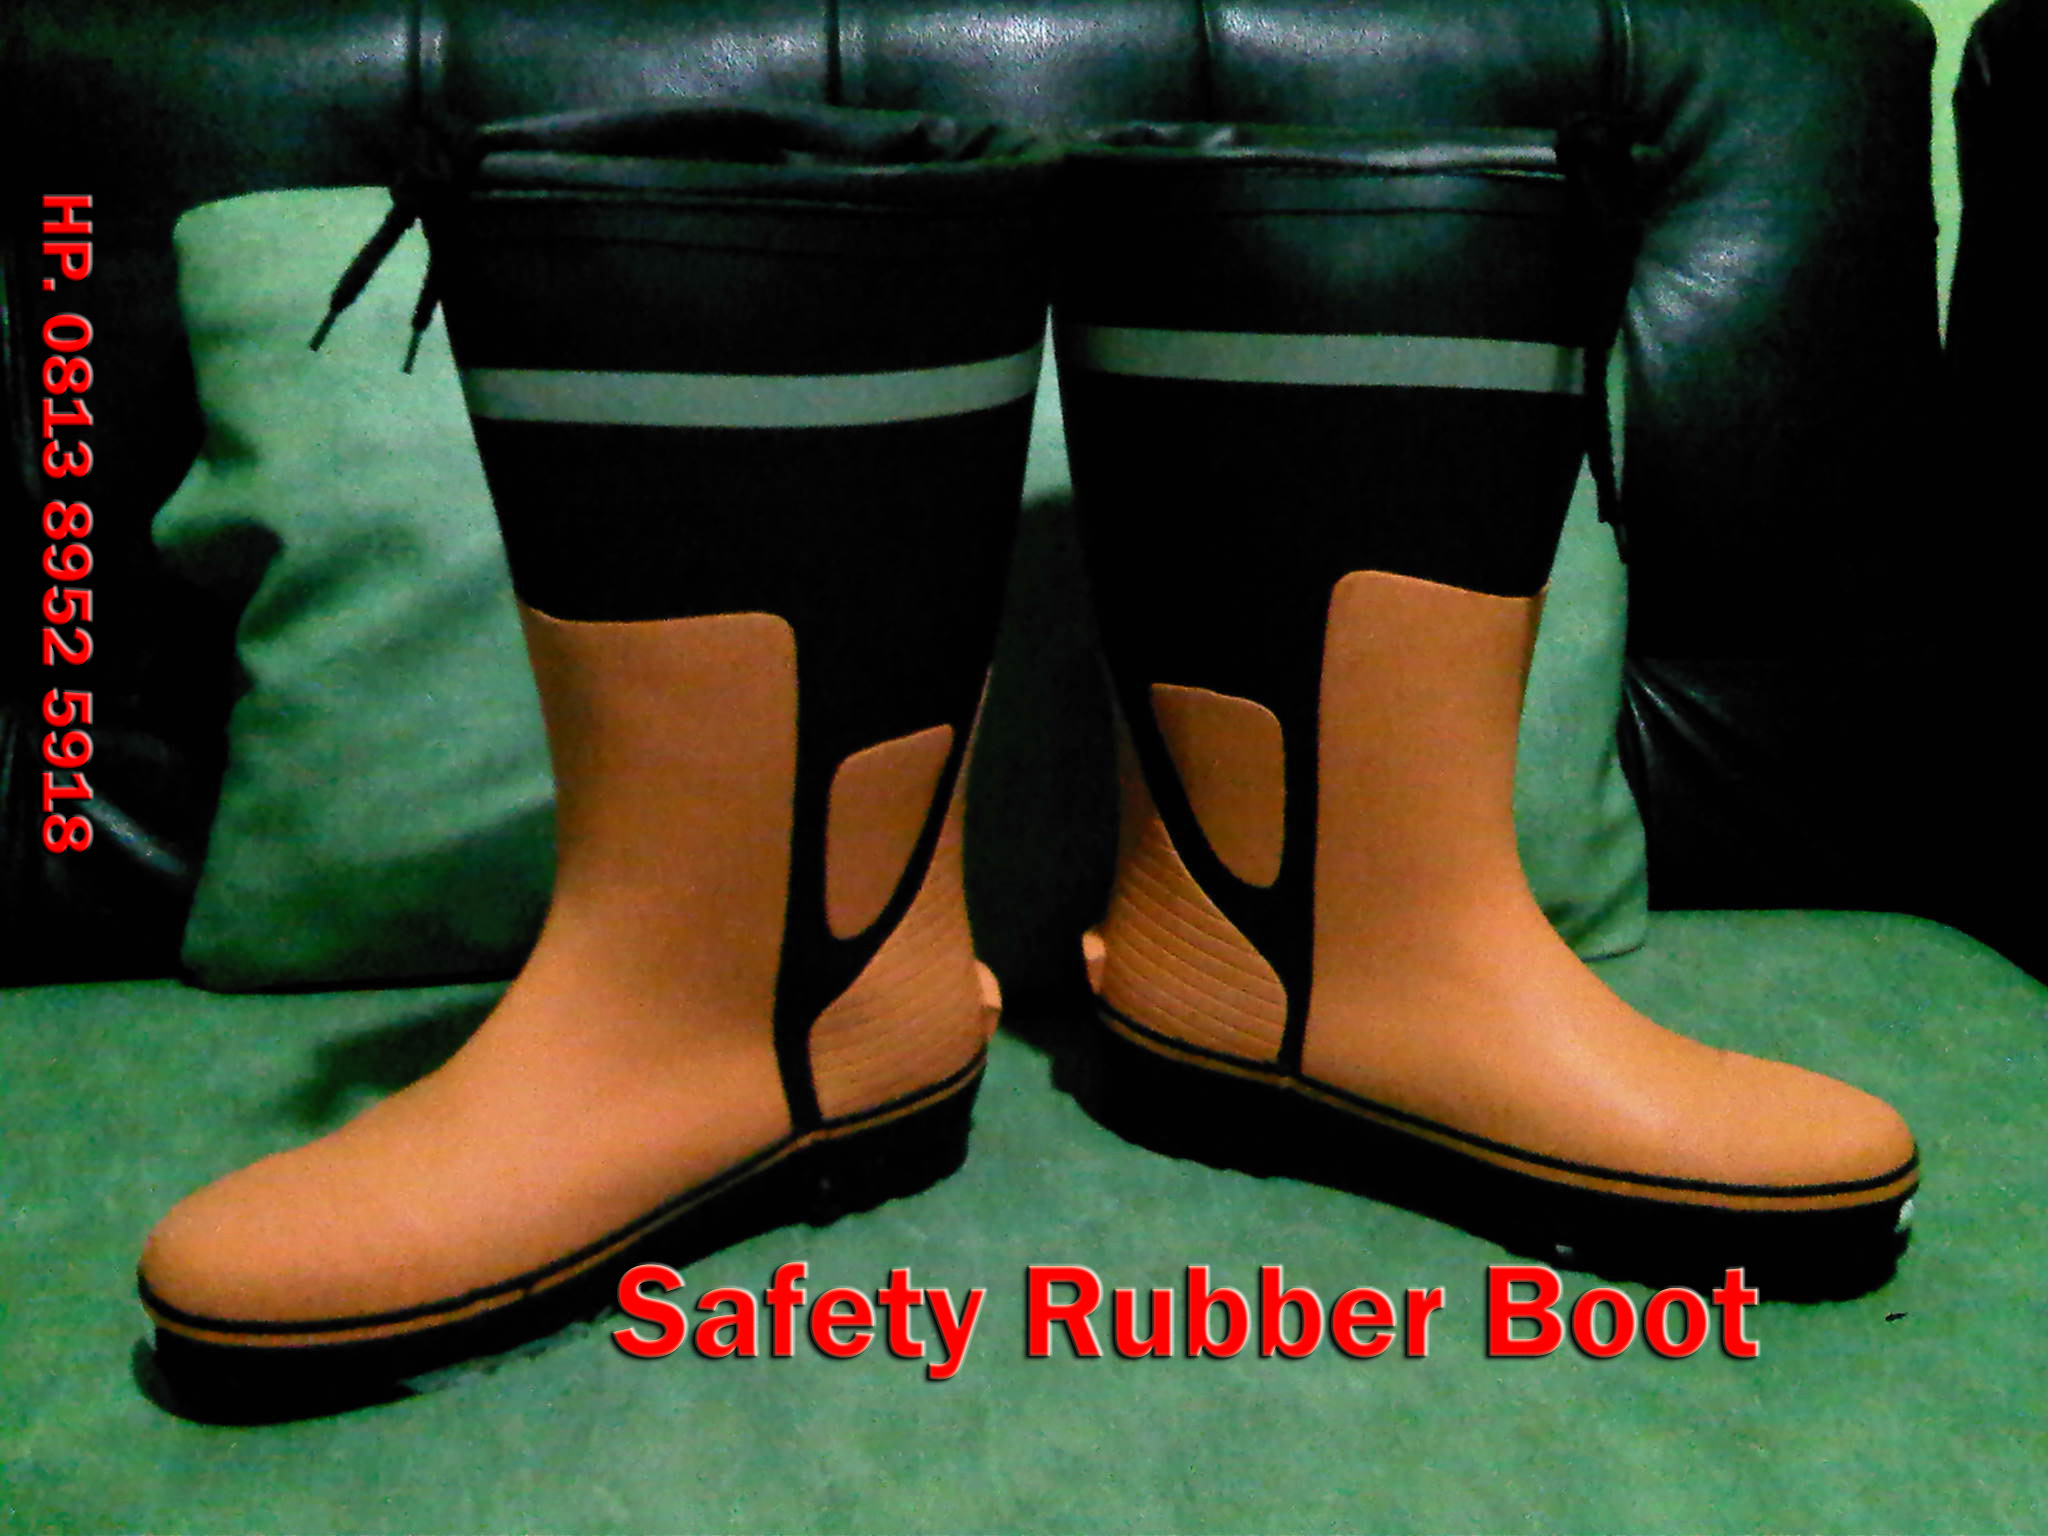 Safety Rubber boot, rubber shoes, sepatu karet safety